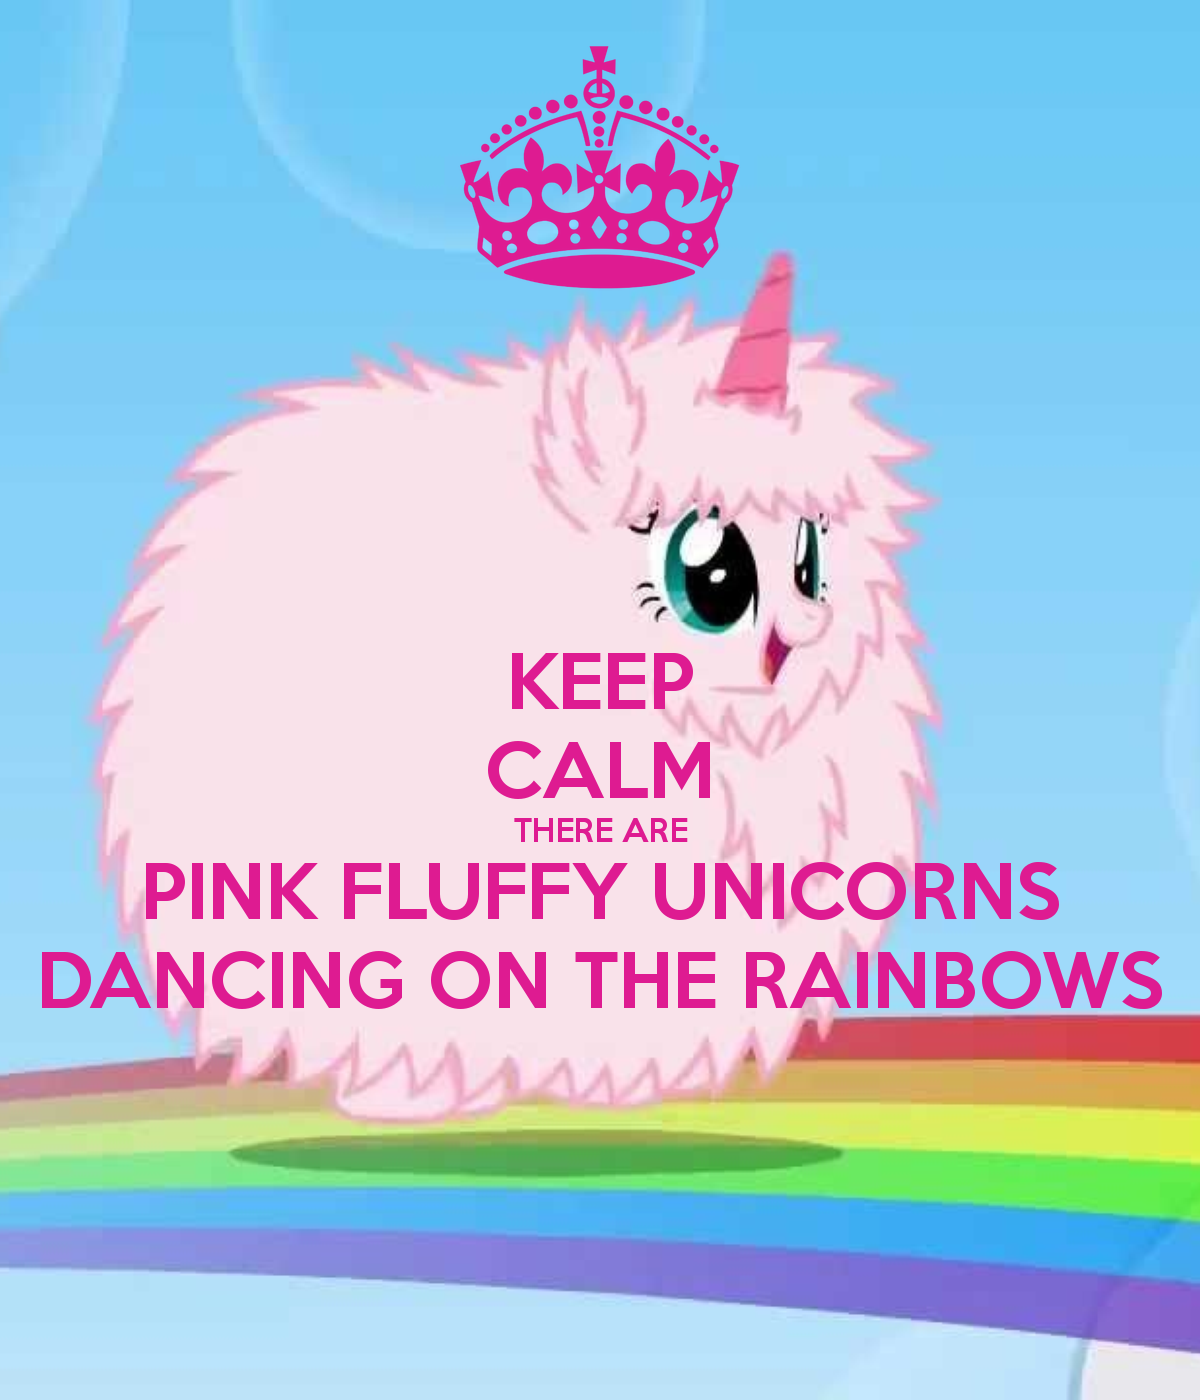 images for gt pink fluffy unicorns on rainbows